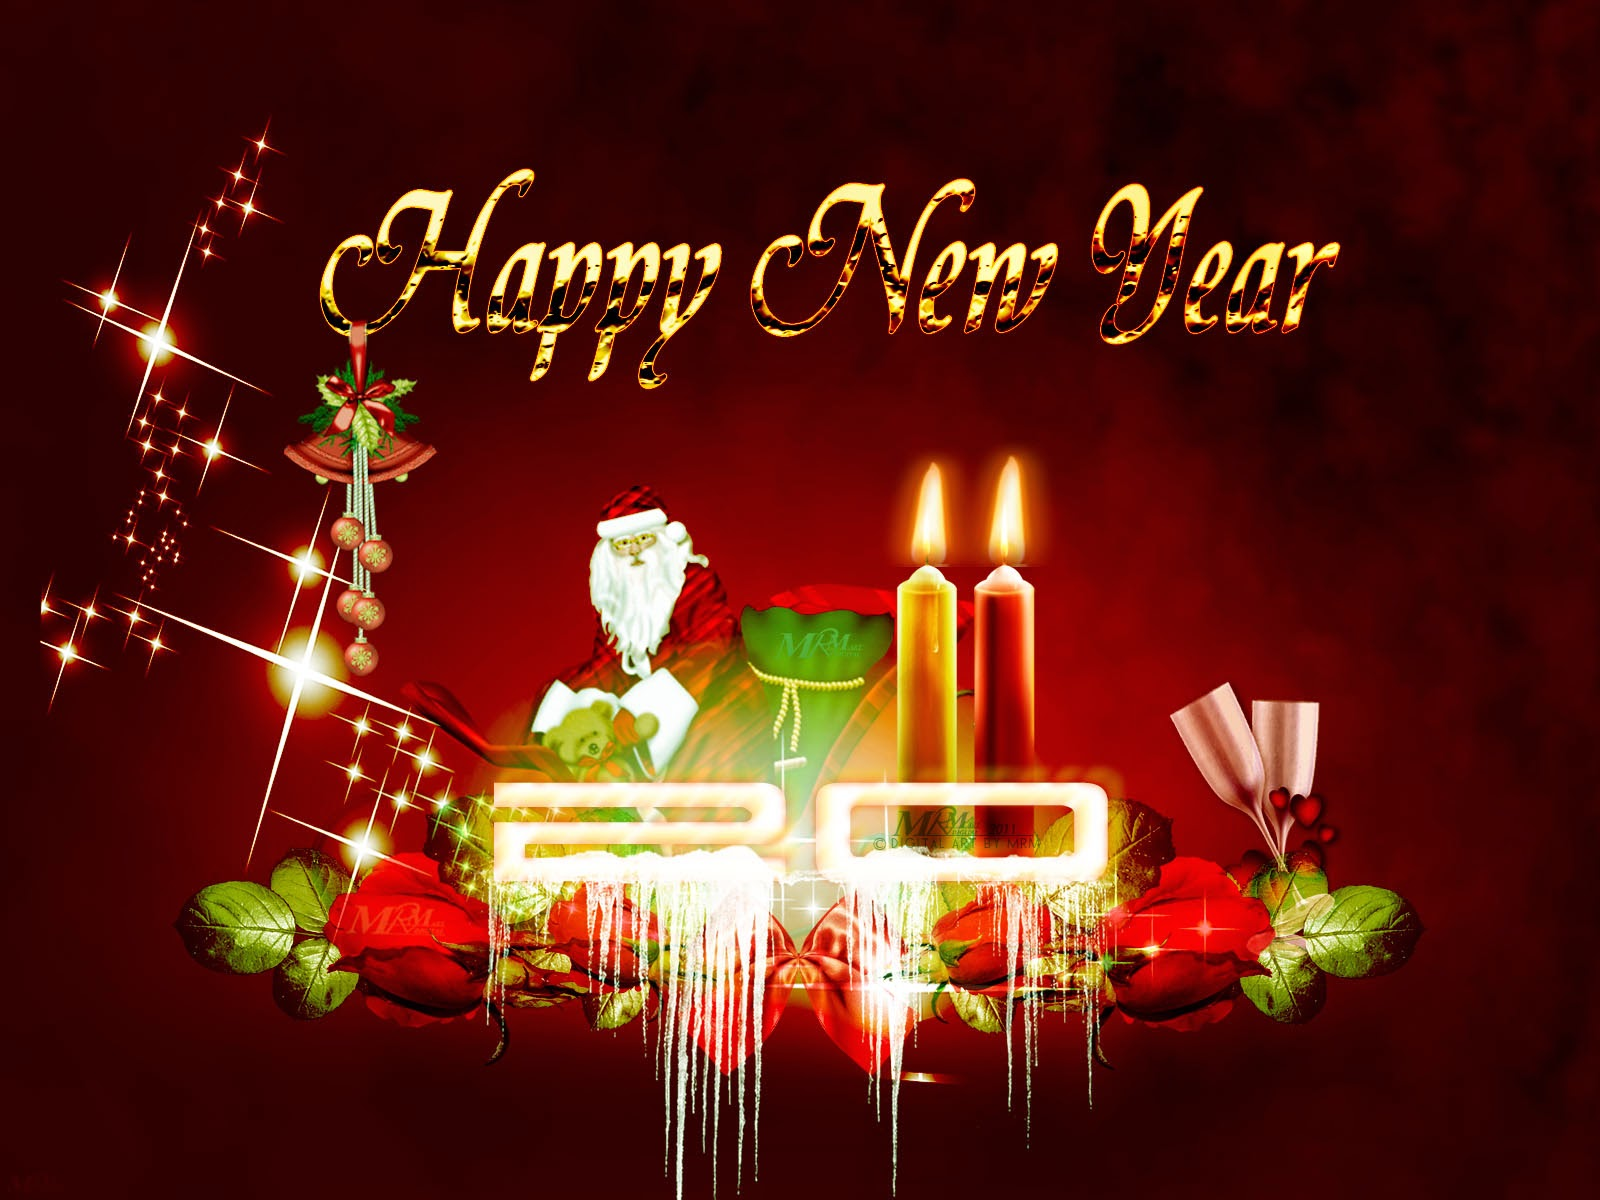 Hd wallpaper new 2017 - Happy New Year Hot Pictures Images Photos Hd Wallpapers Animated Gif 2017